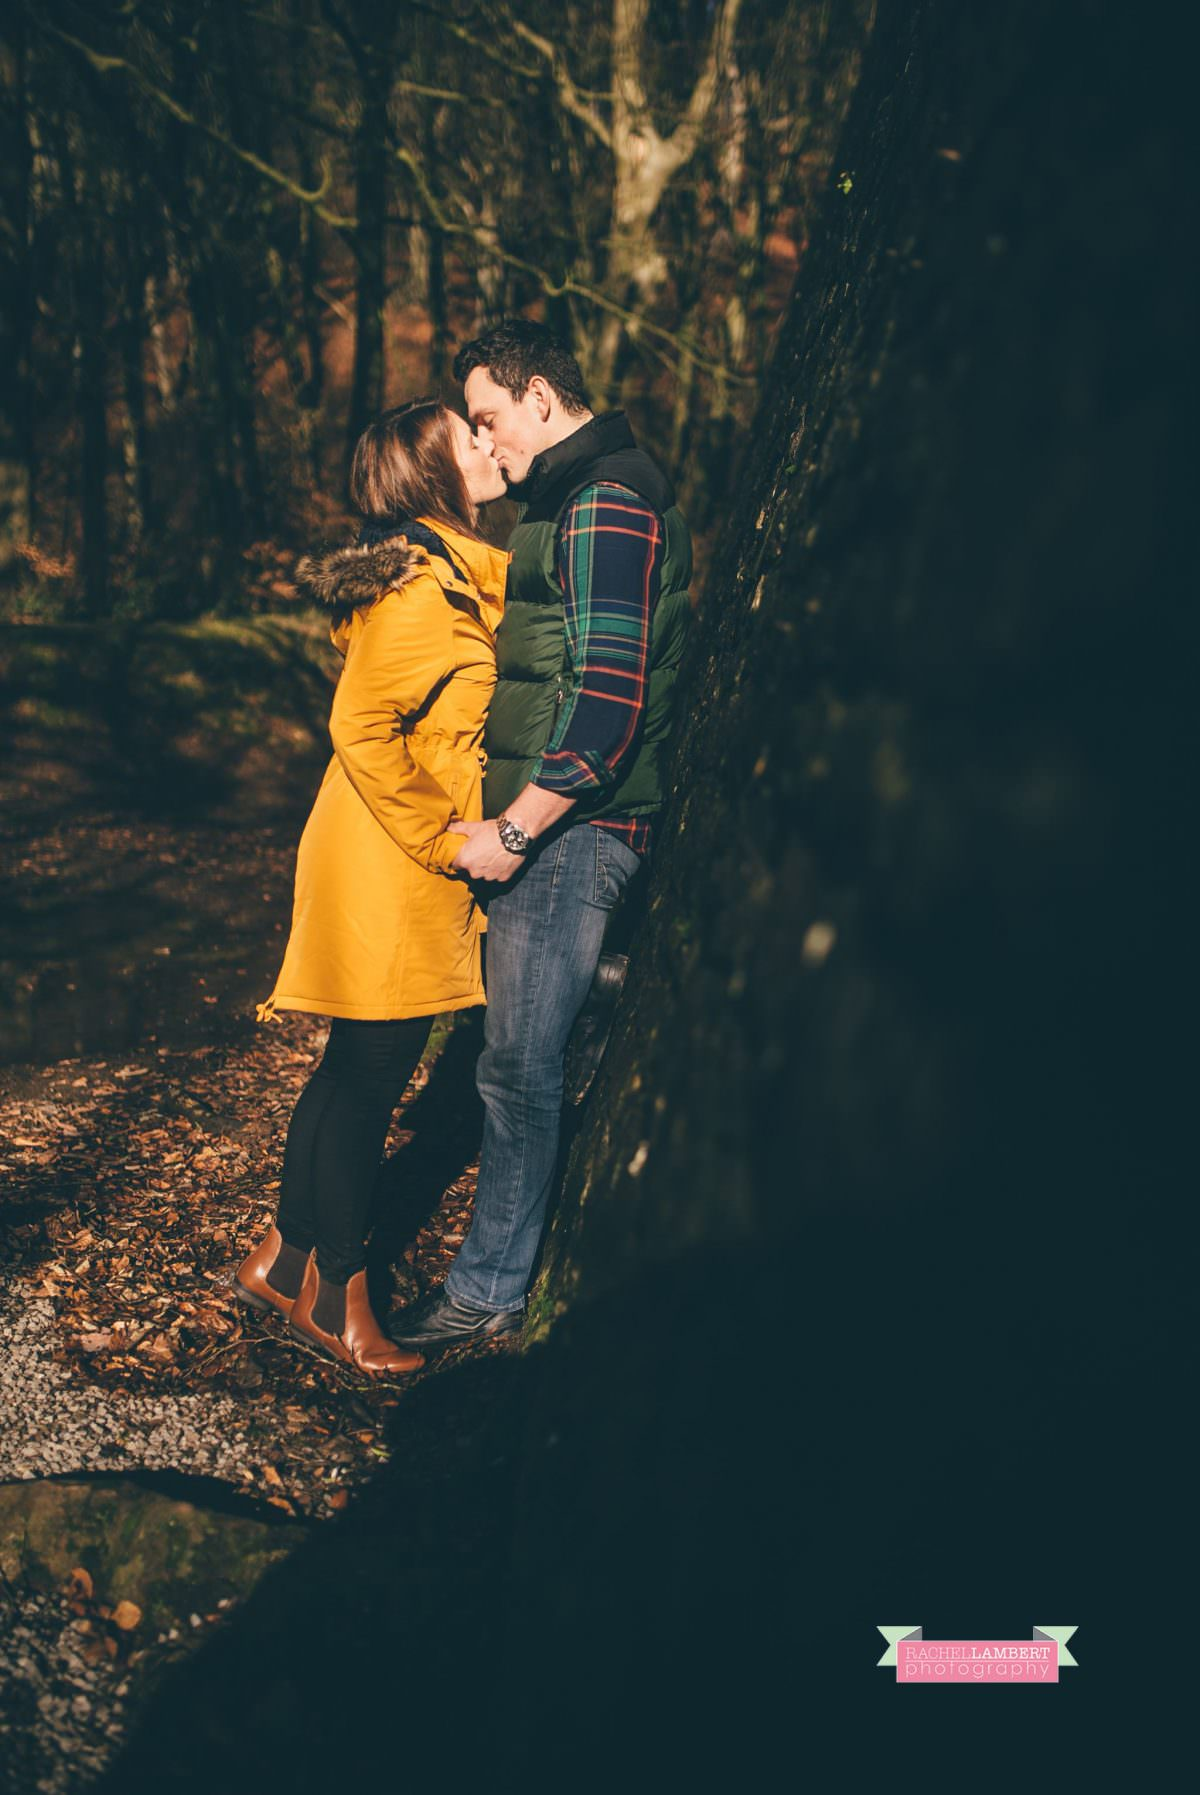 cardiff_welsh_wedding_photographer_rachel_lambert_photography_claire_chris_engagement_castell_coch_ 26